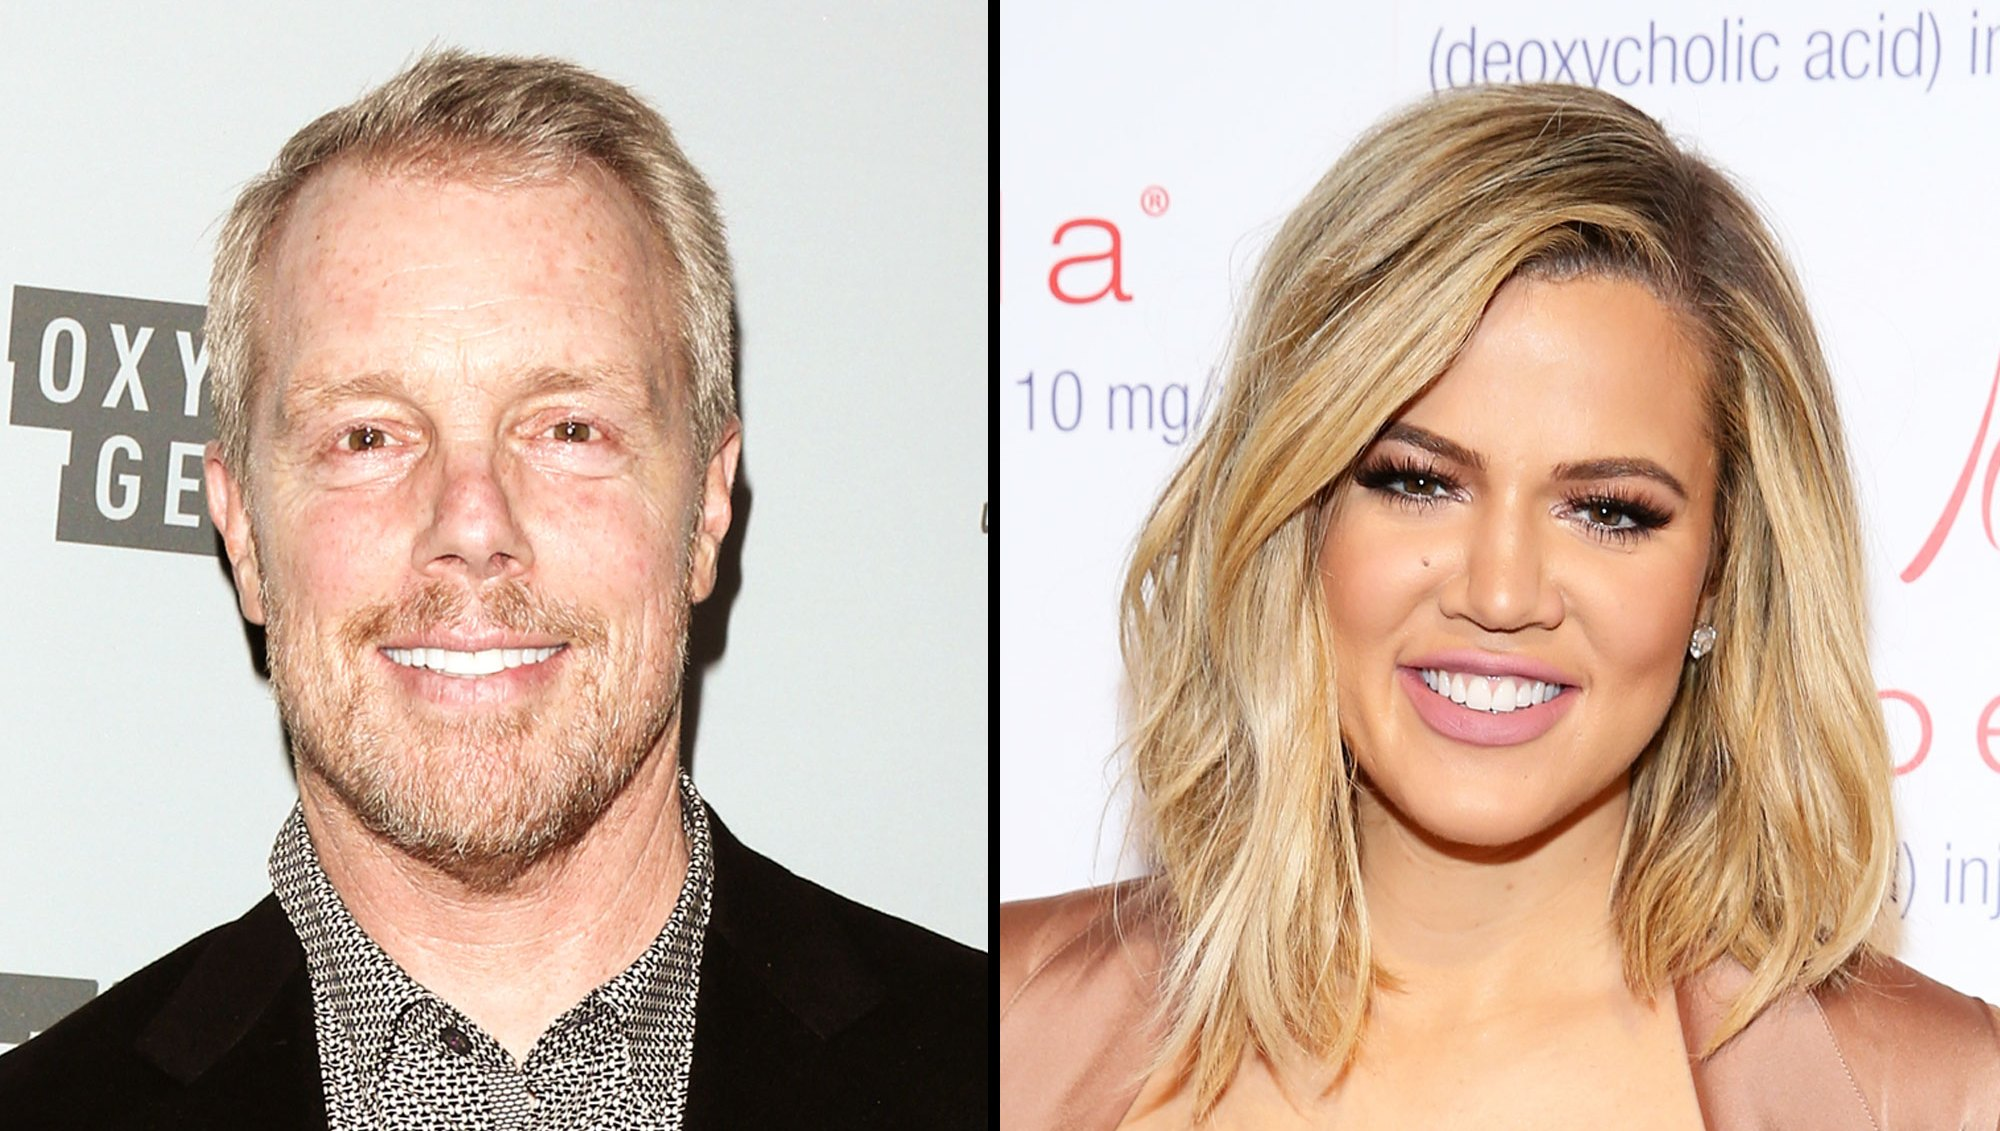 Gunnar Peterson and Khloe Kardashian